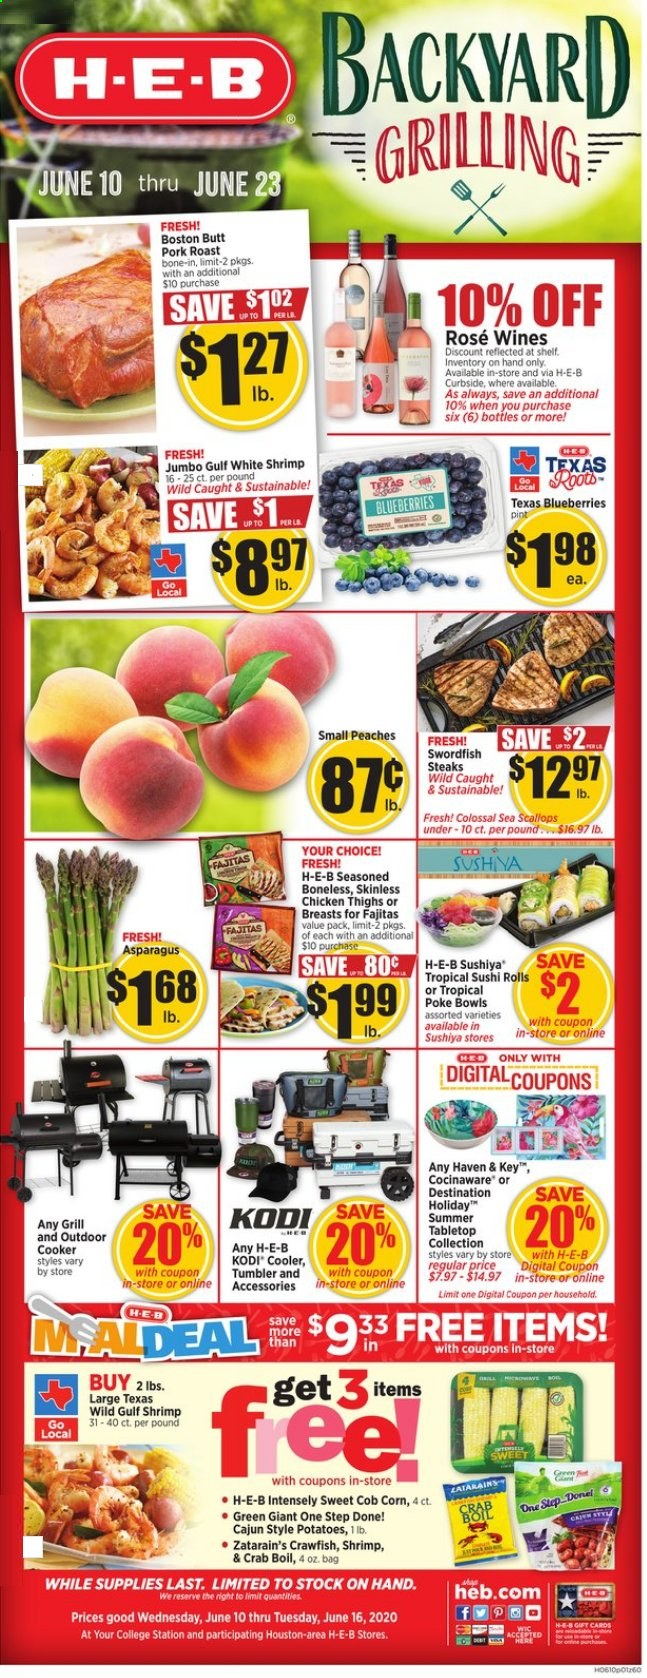 H-E-B Flyer - 06.10.2020 - 06.16.2020 - Sales products - asparagus, corn, potatoes, blueberries, peache, rolls, scallops, swordfish, crab, shrimps, crawfish, chicken, chicken thighs, pork meat, pork roast, tumbler, bag. Page 1.